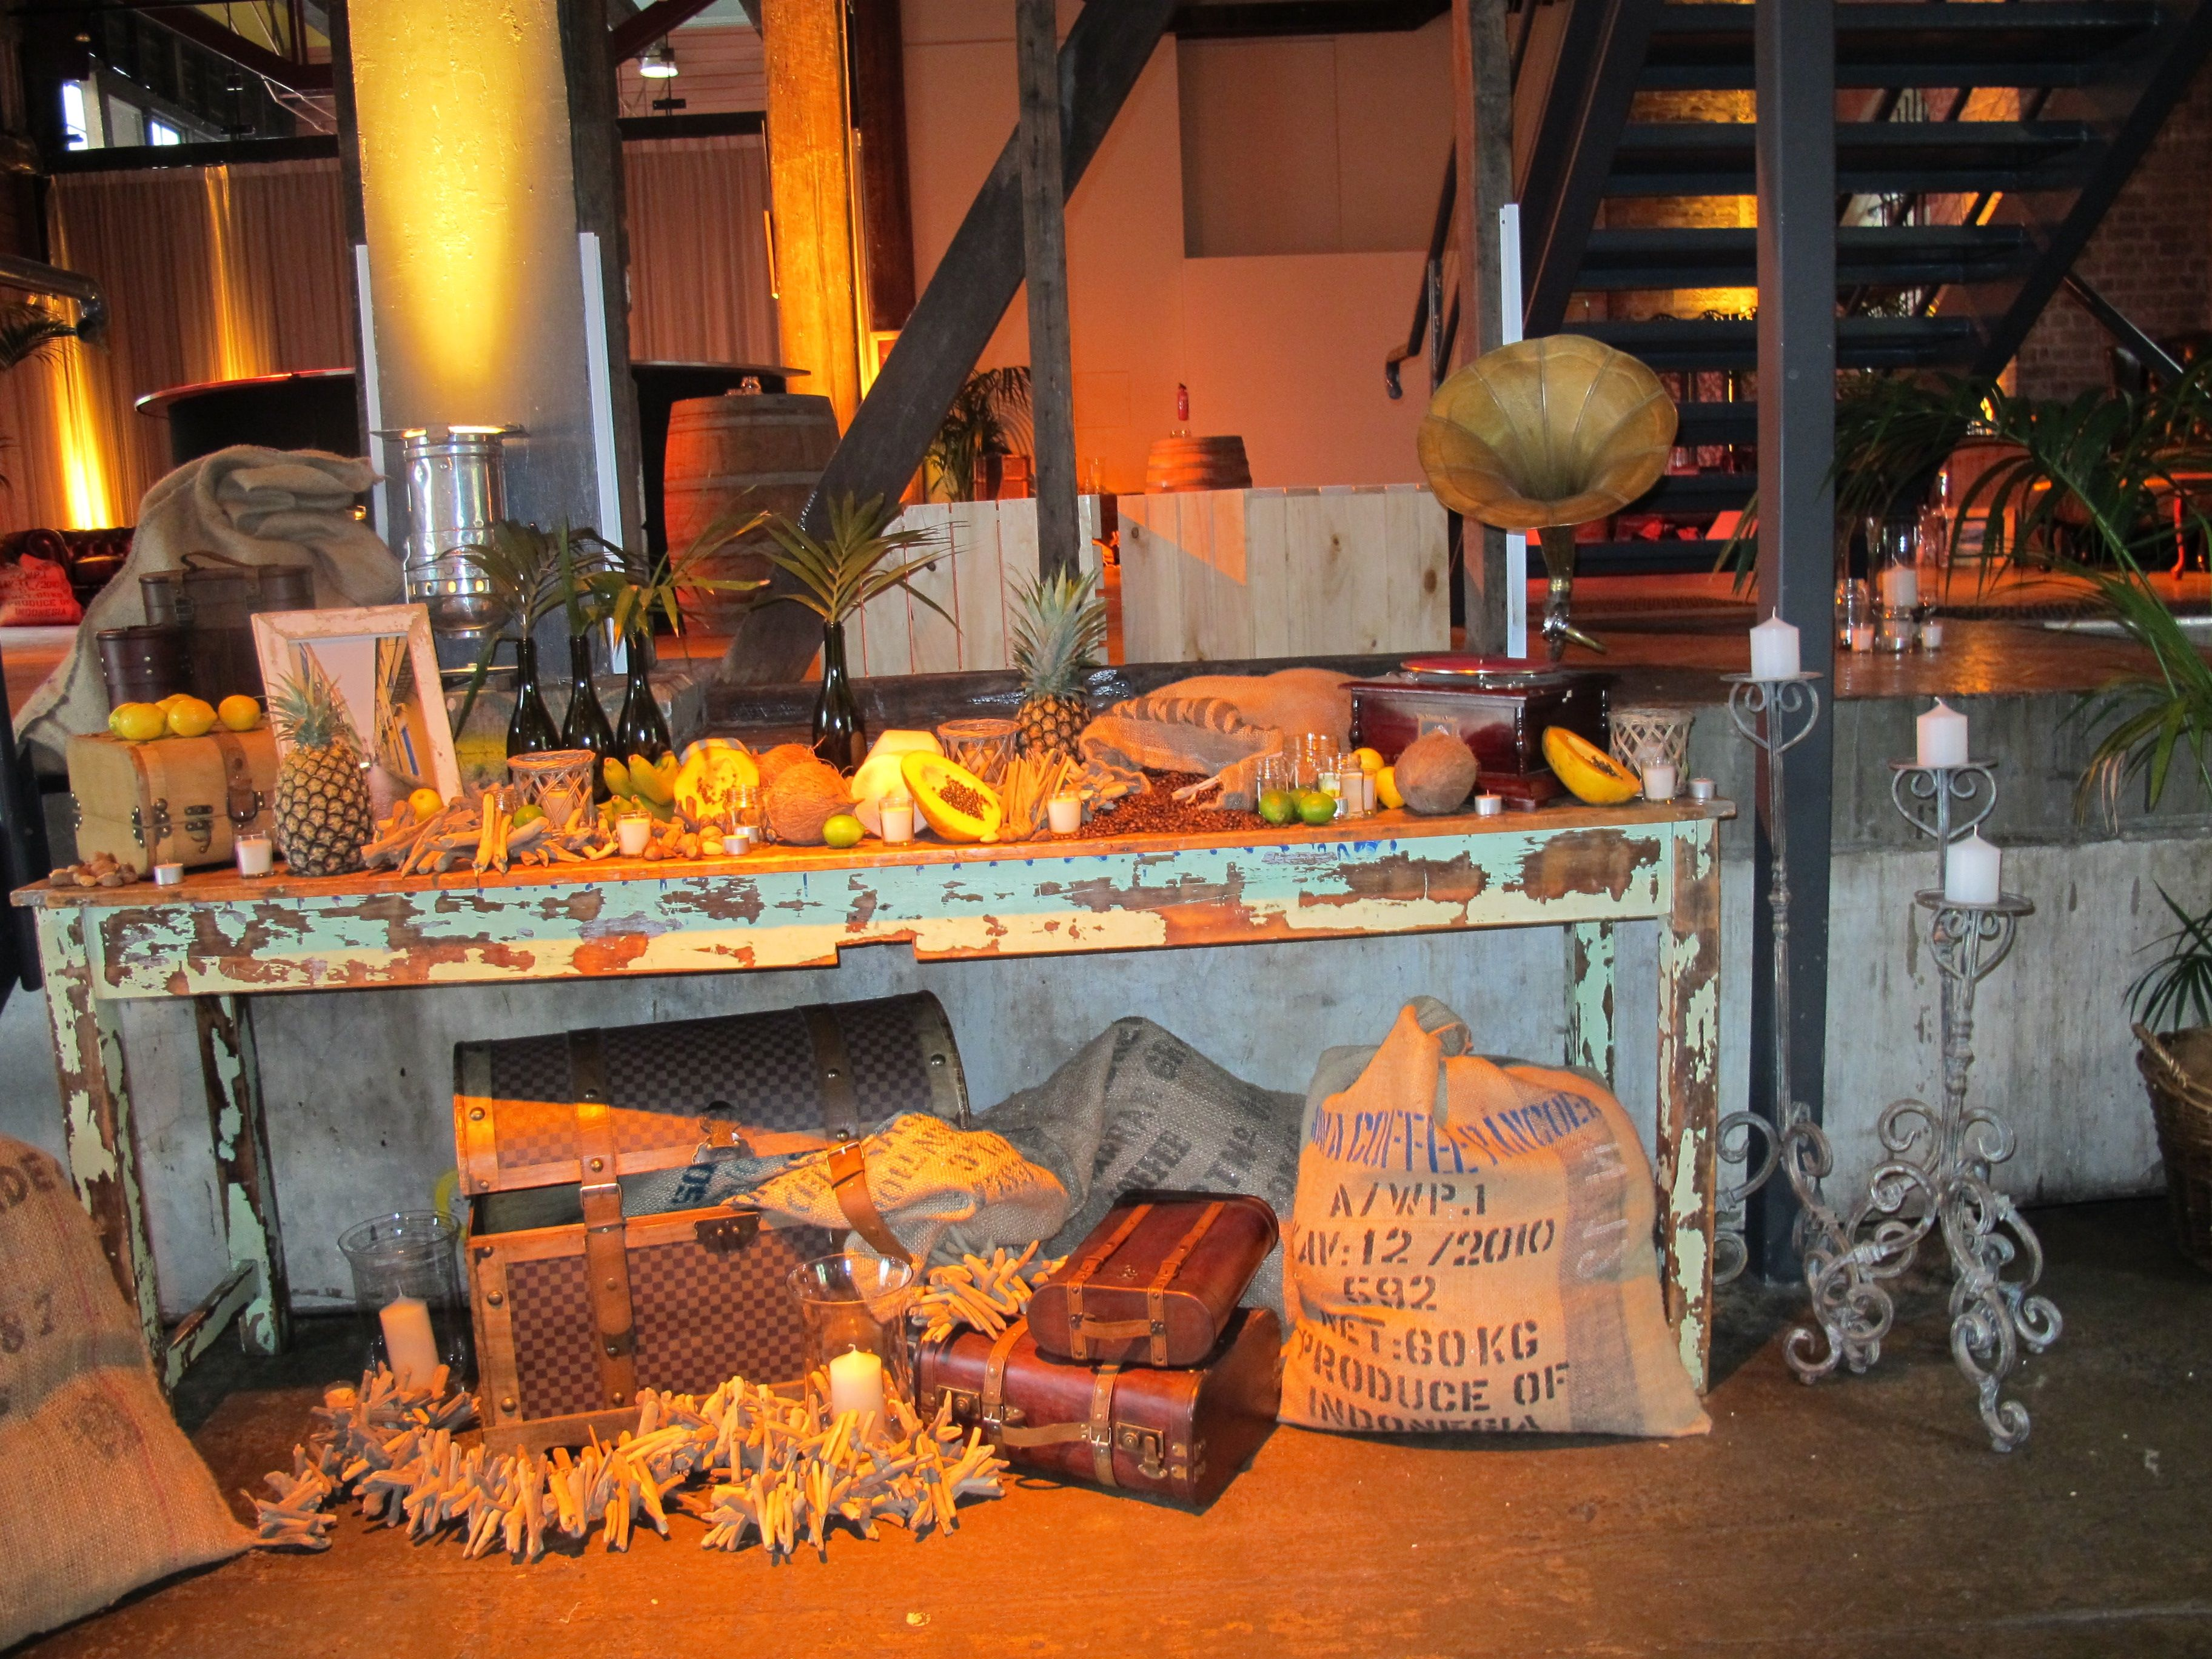 Cuban Party Decorations Image Result For Cuban Party Ideas Cuban Party Ideas Pinterest